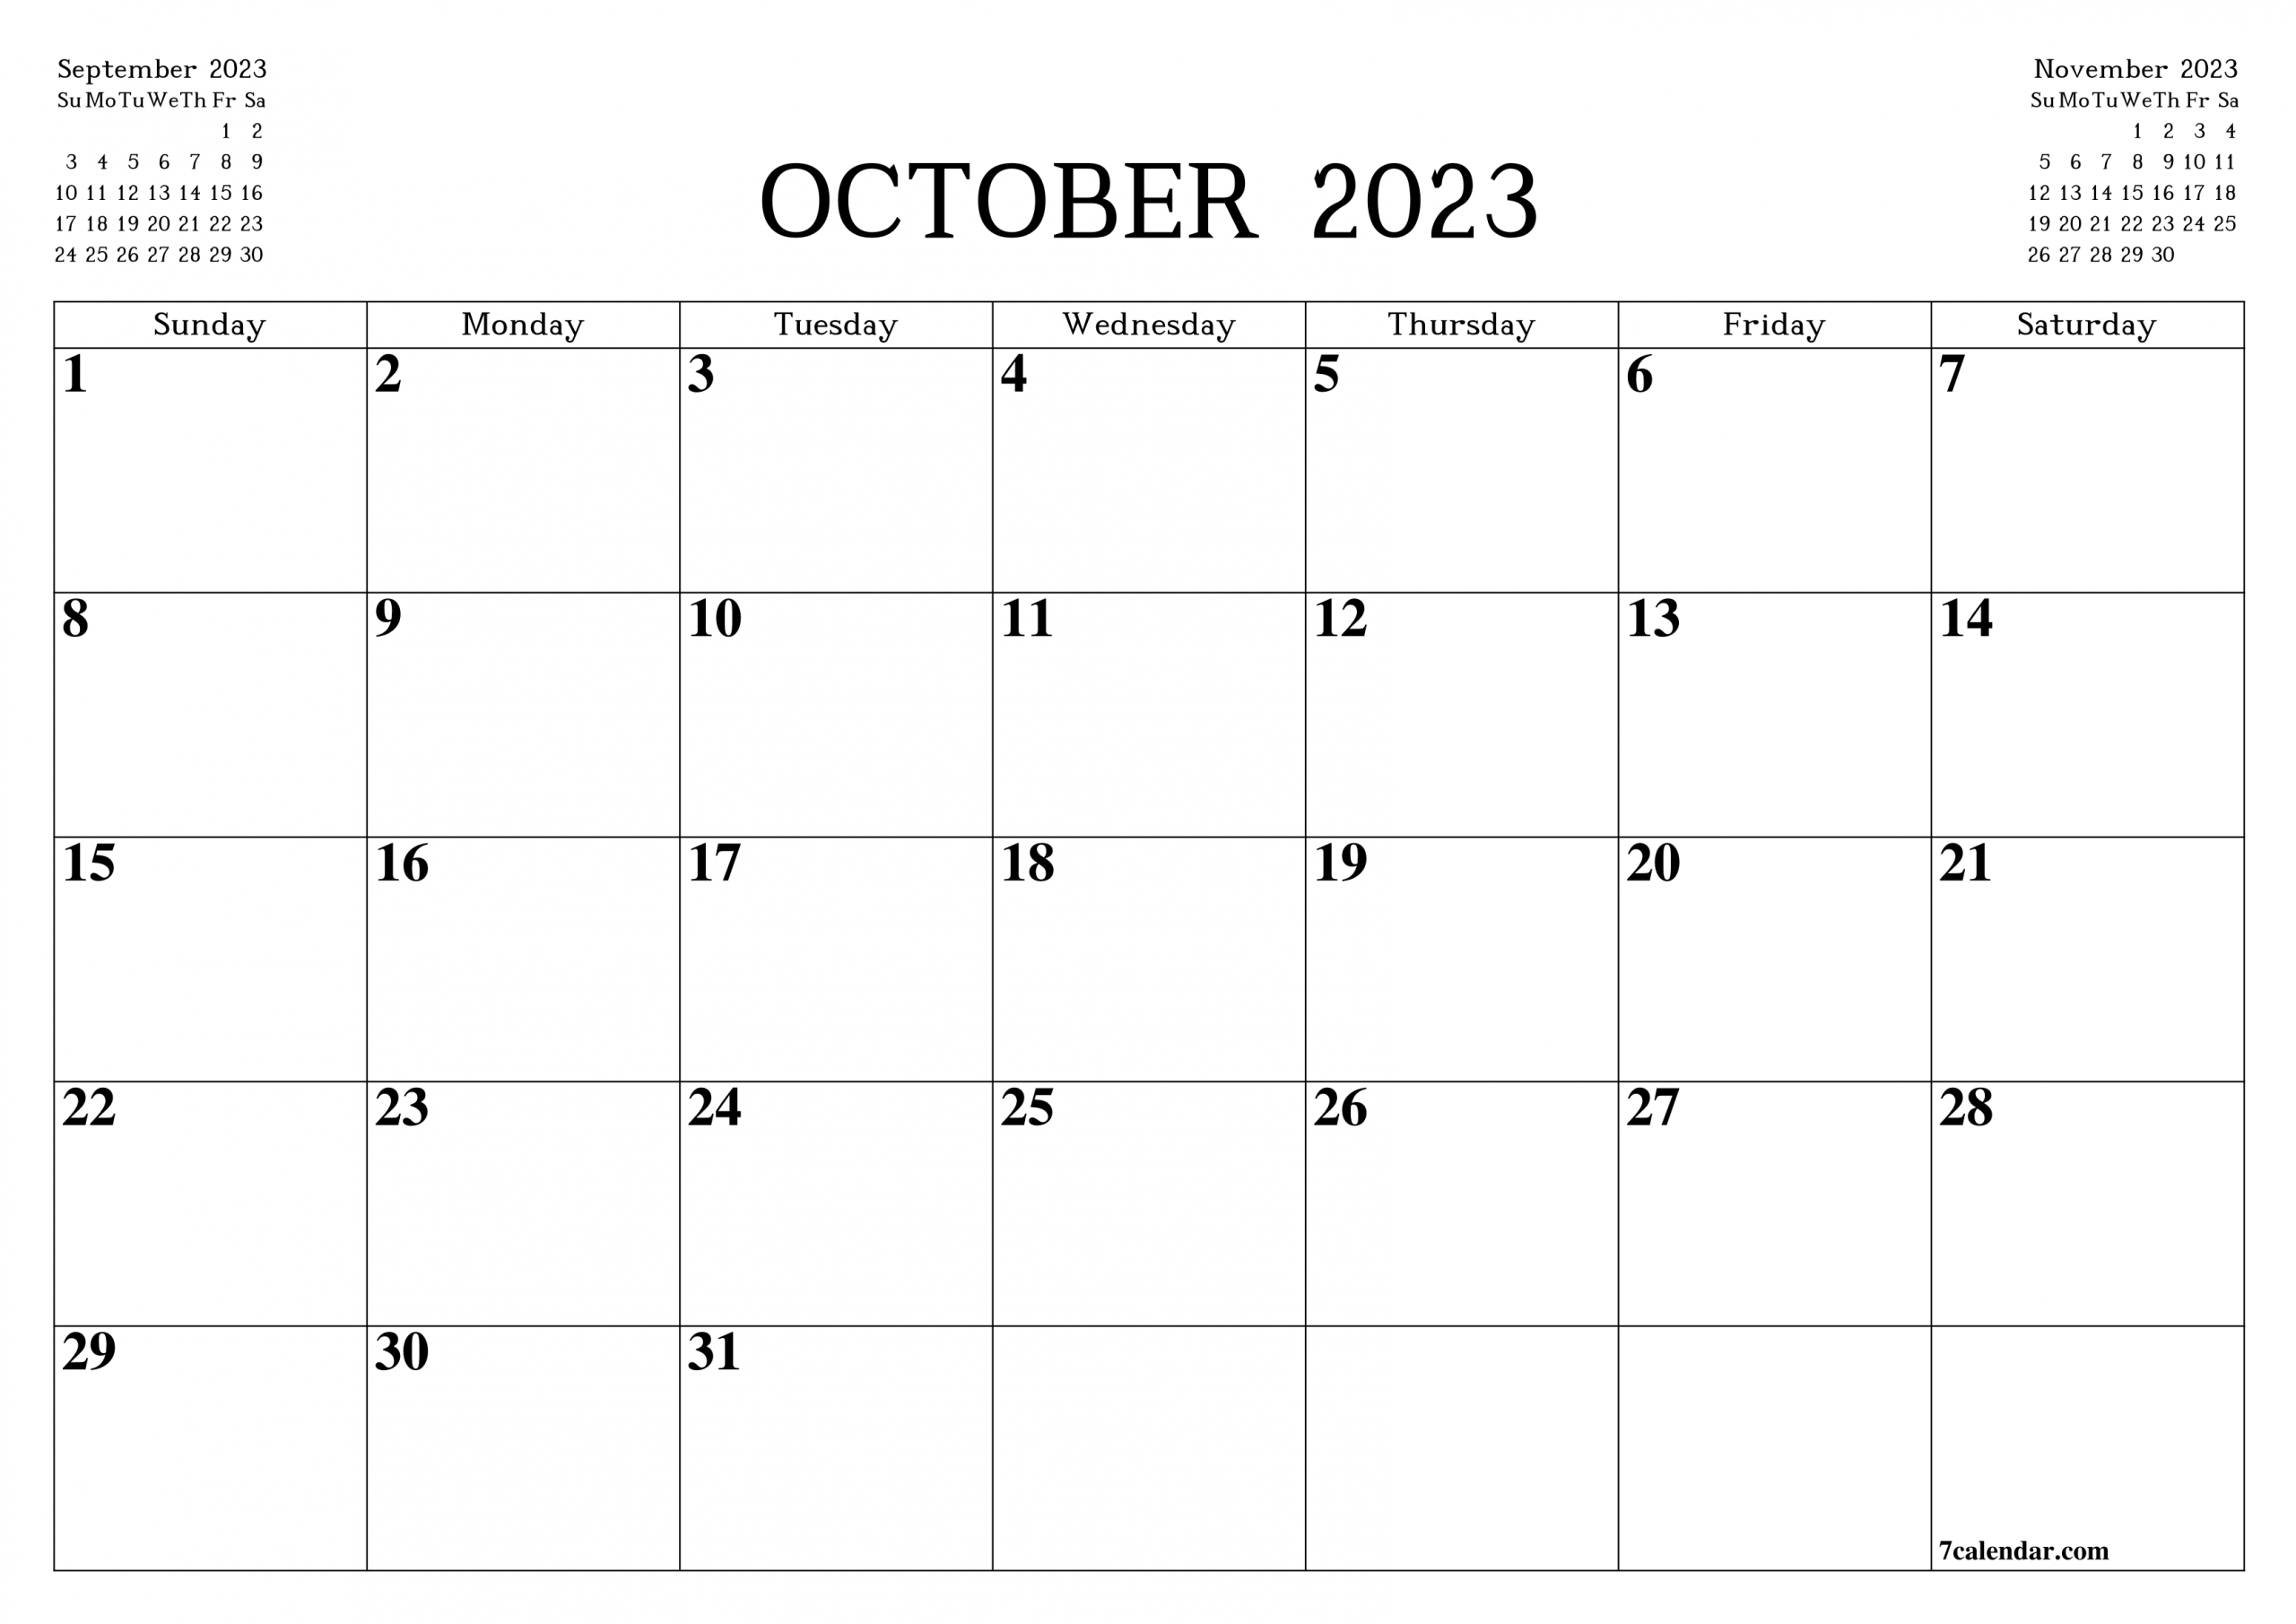 Printable Blank Monthly Planner For October 2023 - A4, A5